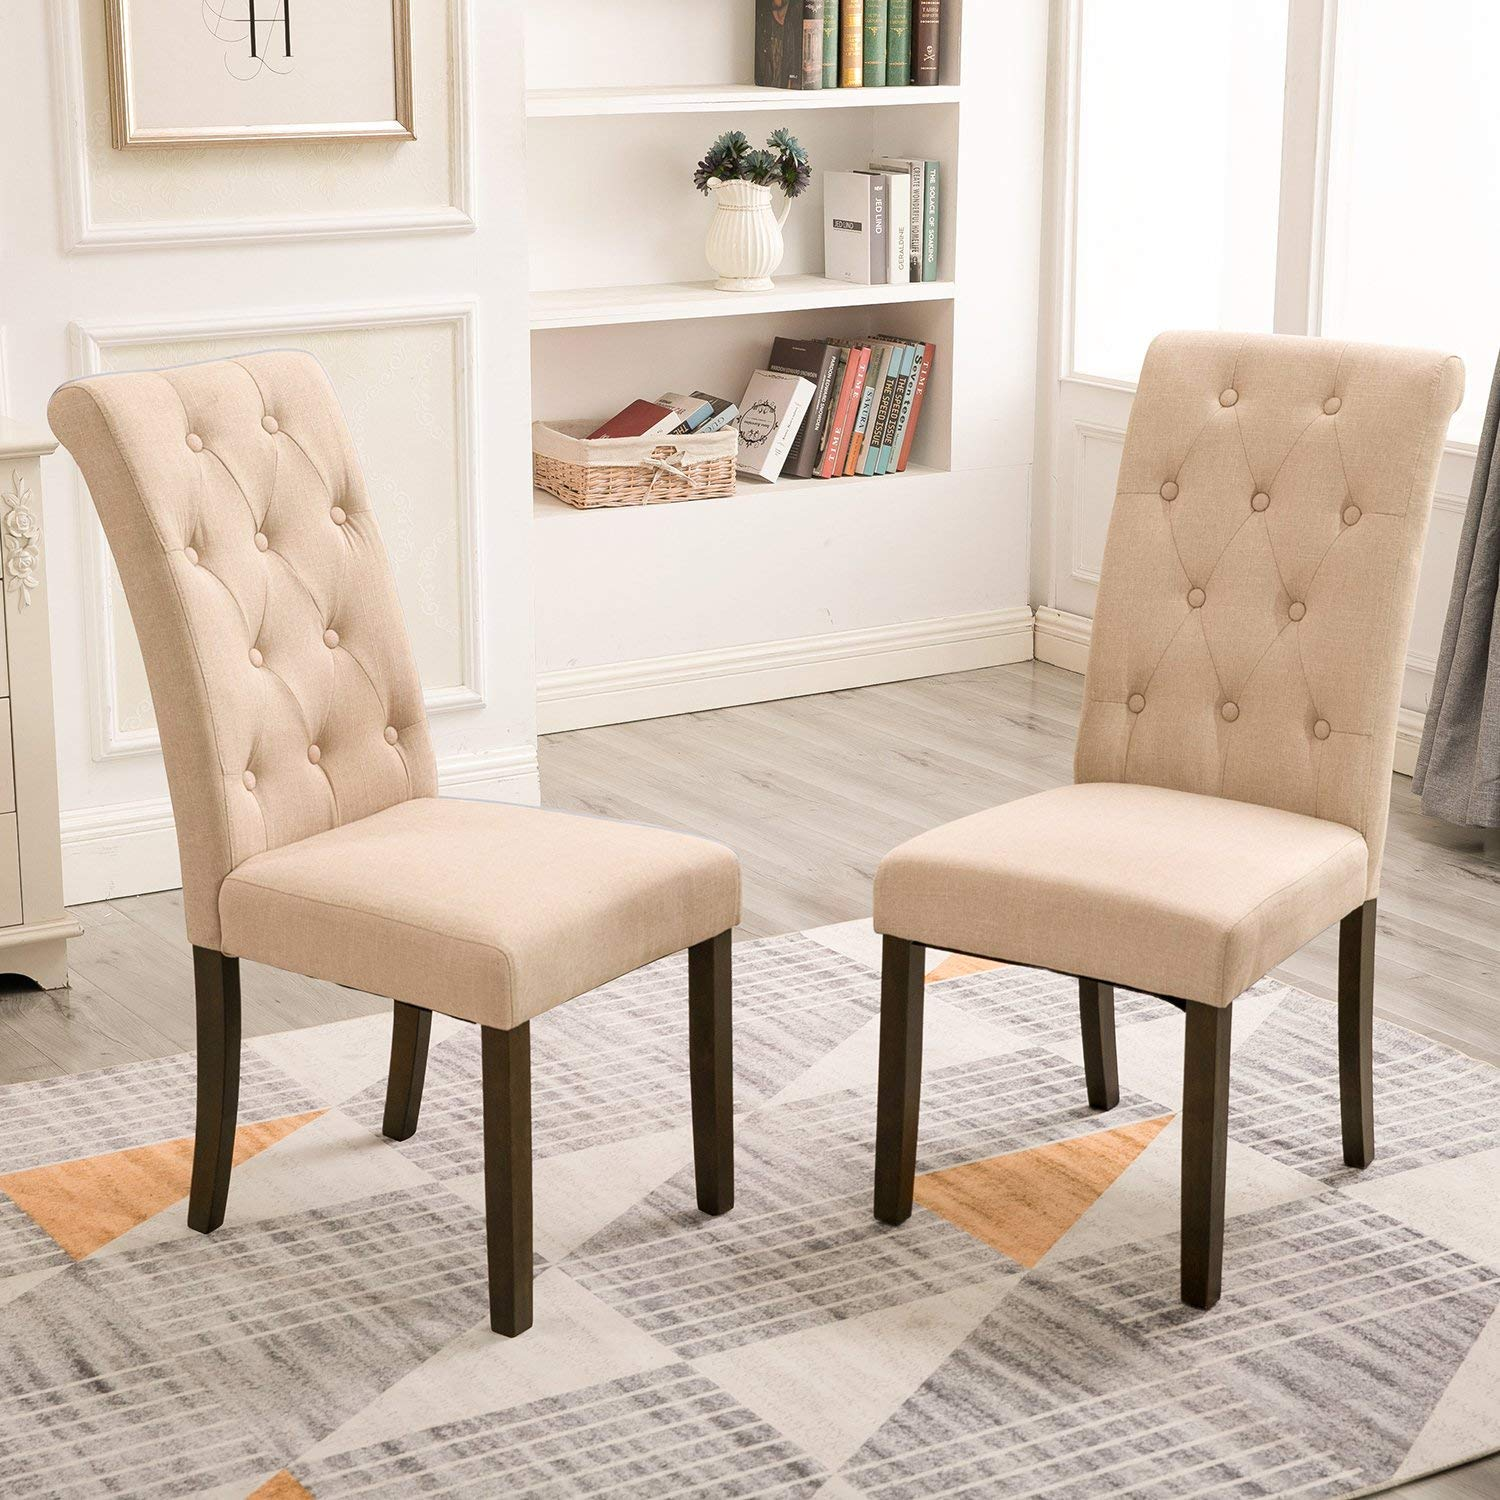 Merax Dining Chairs Dining Room Chairs Parsons Chair Kitchen Chairs Set of  4 for Home Kitchen Living Room